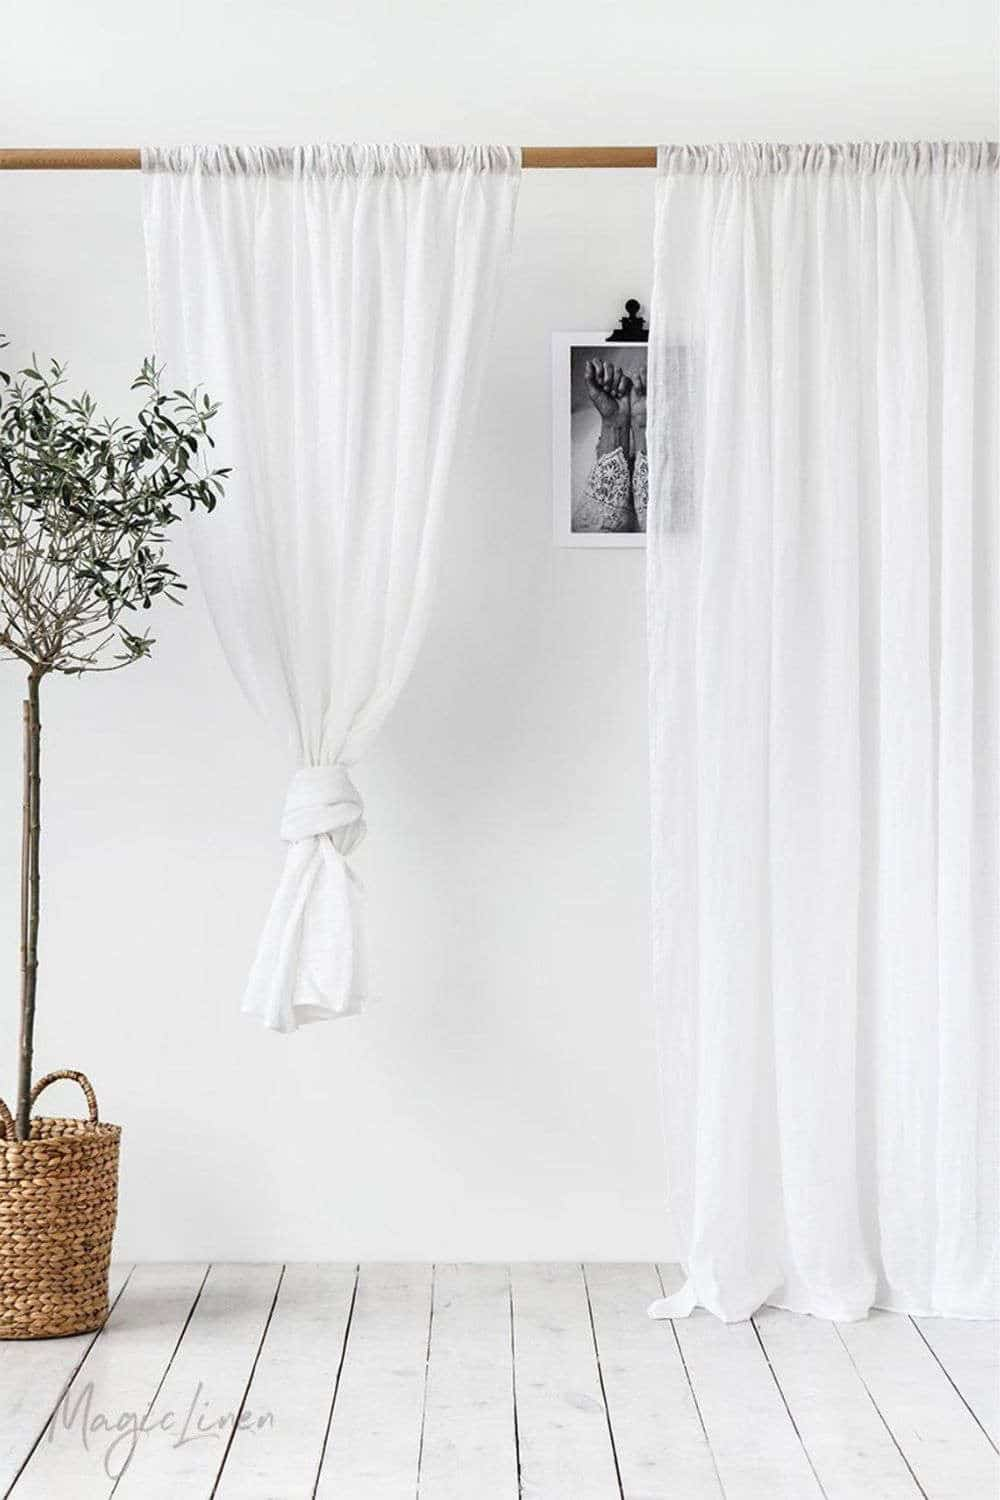 Let's block out that bright morning sun and explore some of our favorite organic and eco friendly curtains Image by Magic Linen #organiclinencurtains #ecofriendlycurtains #sustainablejungle